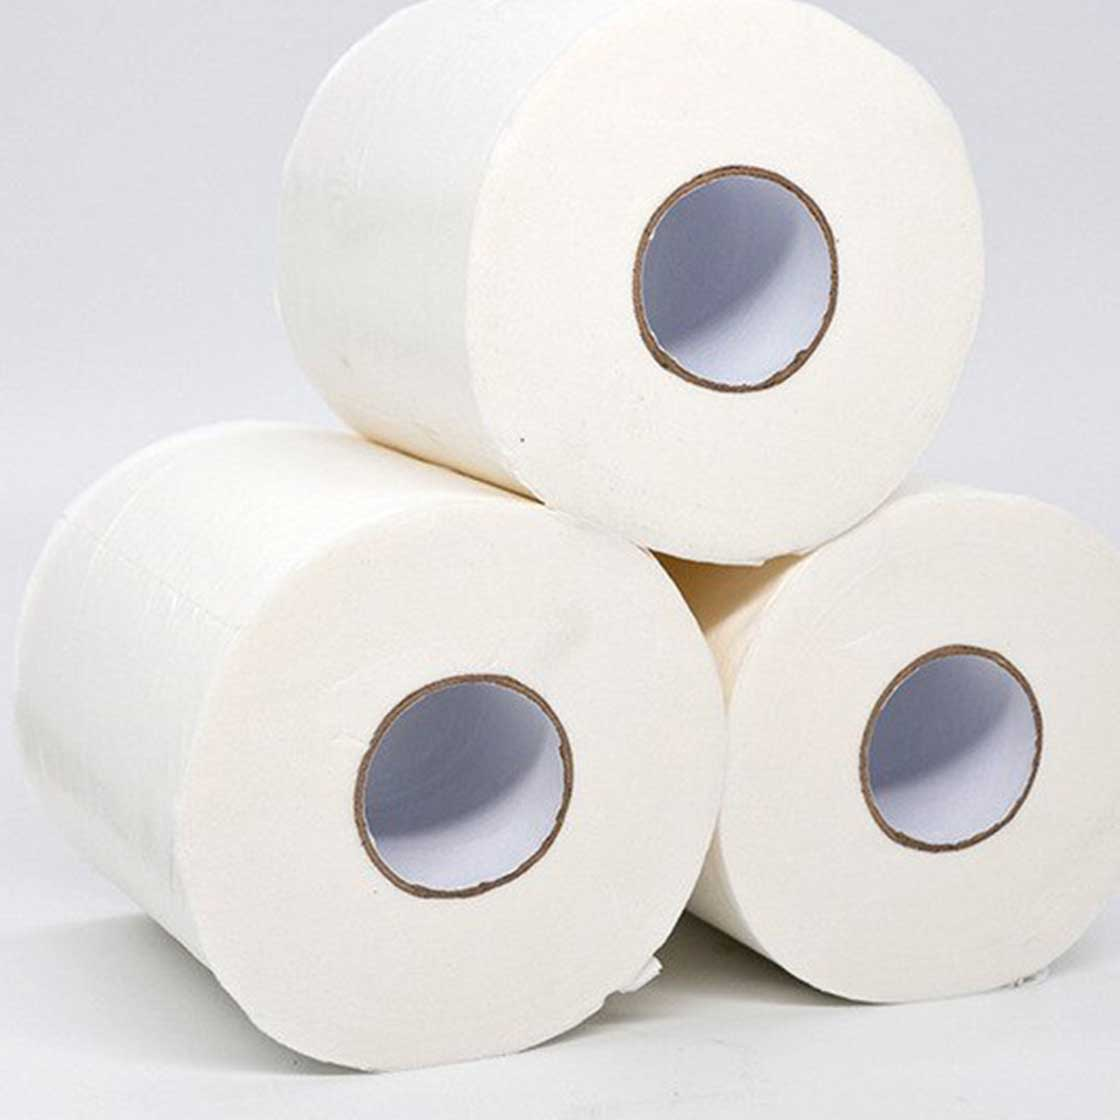 Toilet paper (100% recycled) - Individual Rolls by Ecoleaf